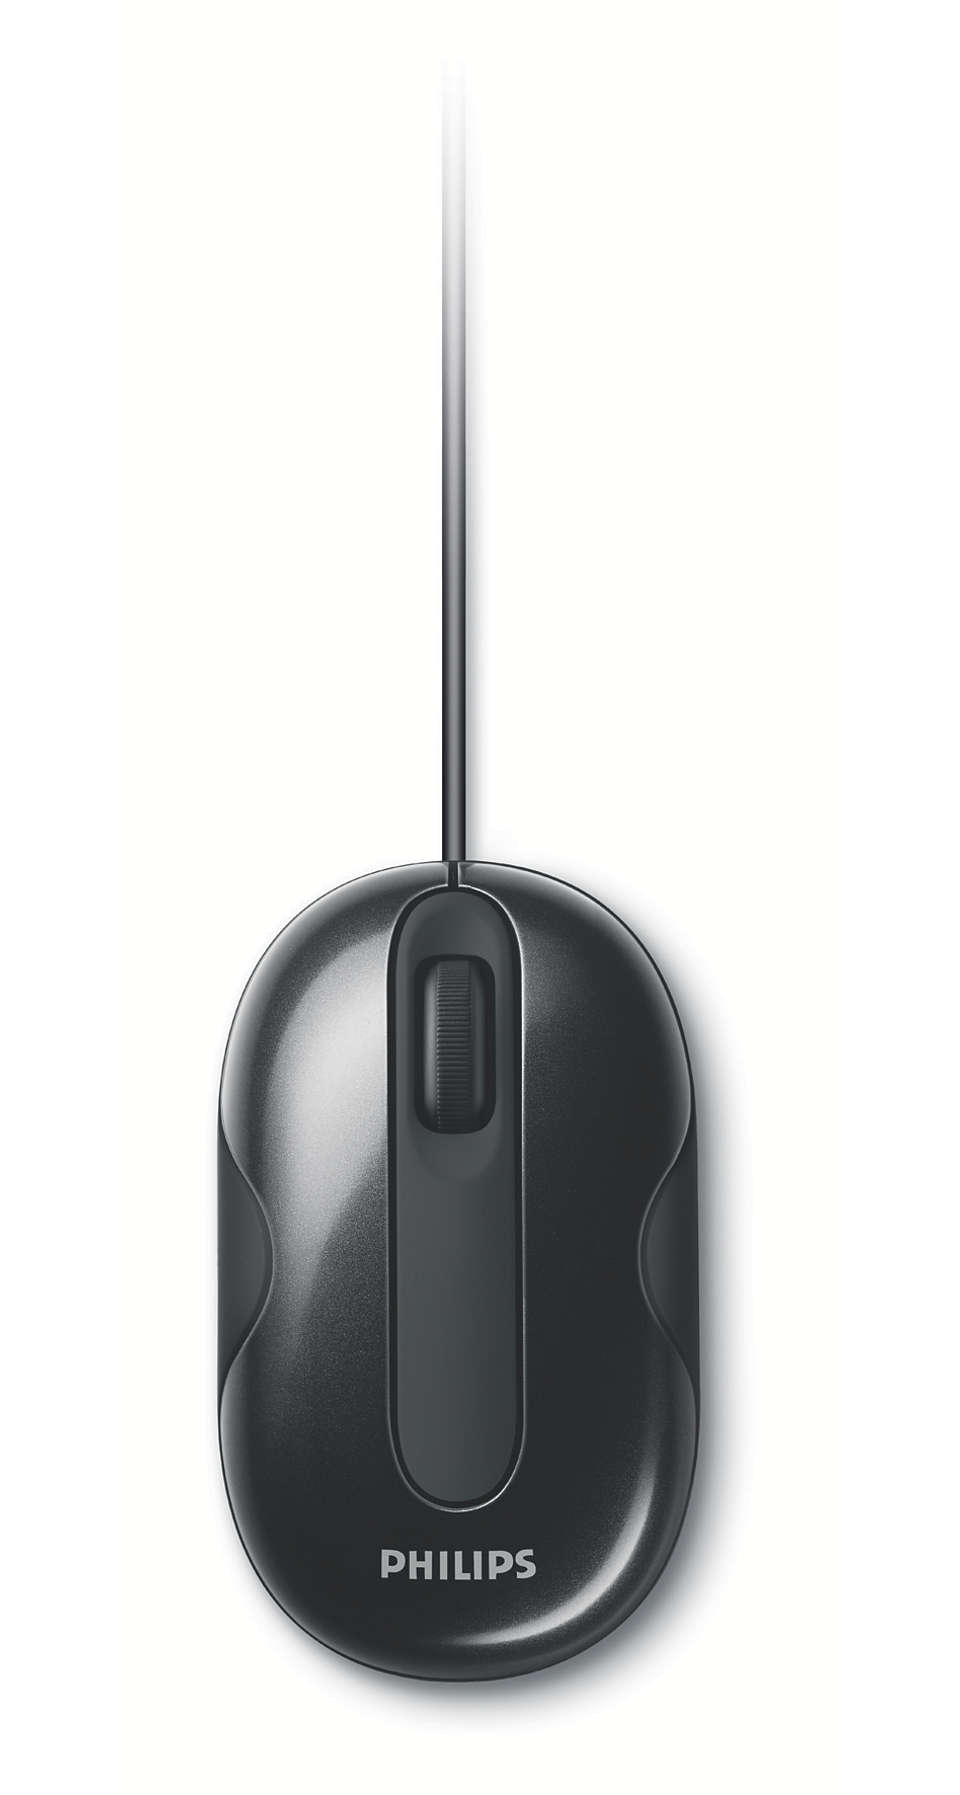 Wired notebook mouse